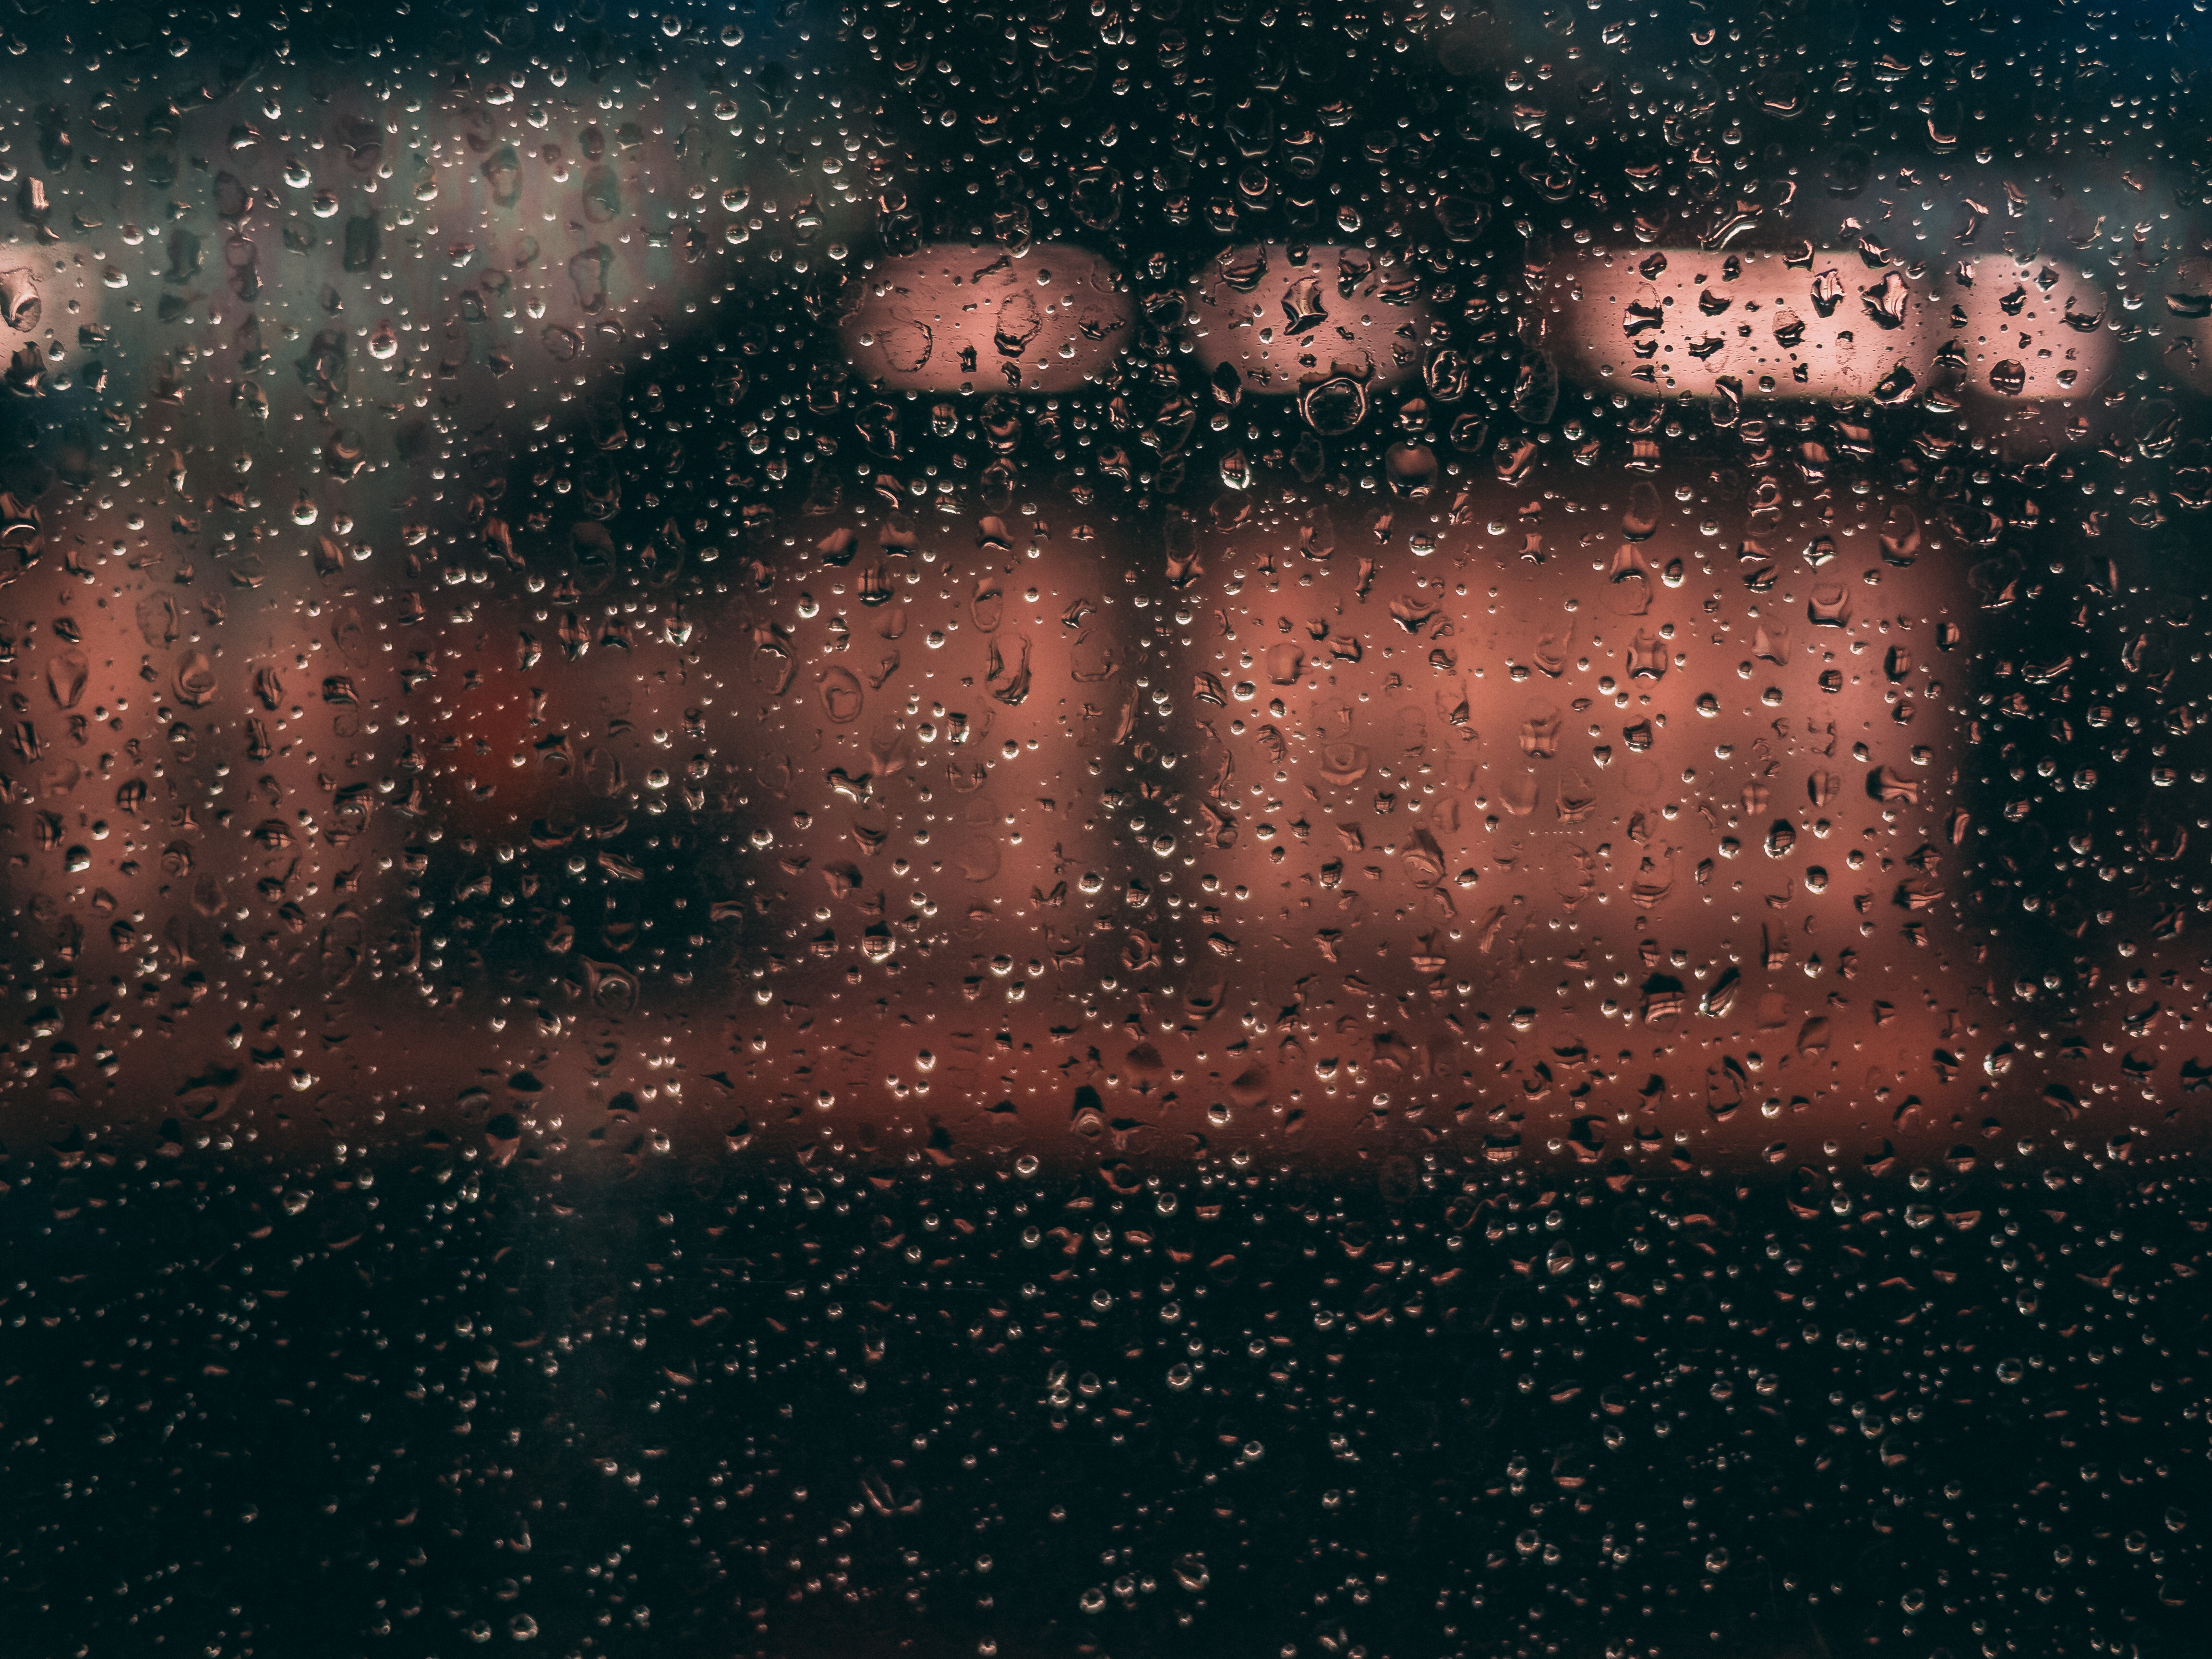 61042 download wallpaper Macro, Drops, Glass, Rain, Moisture screensavers and pictures for free